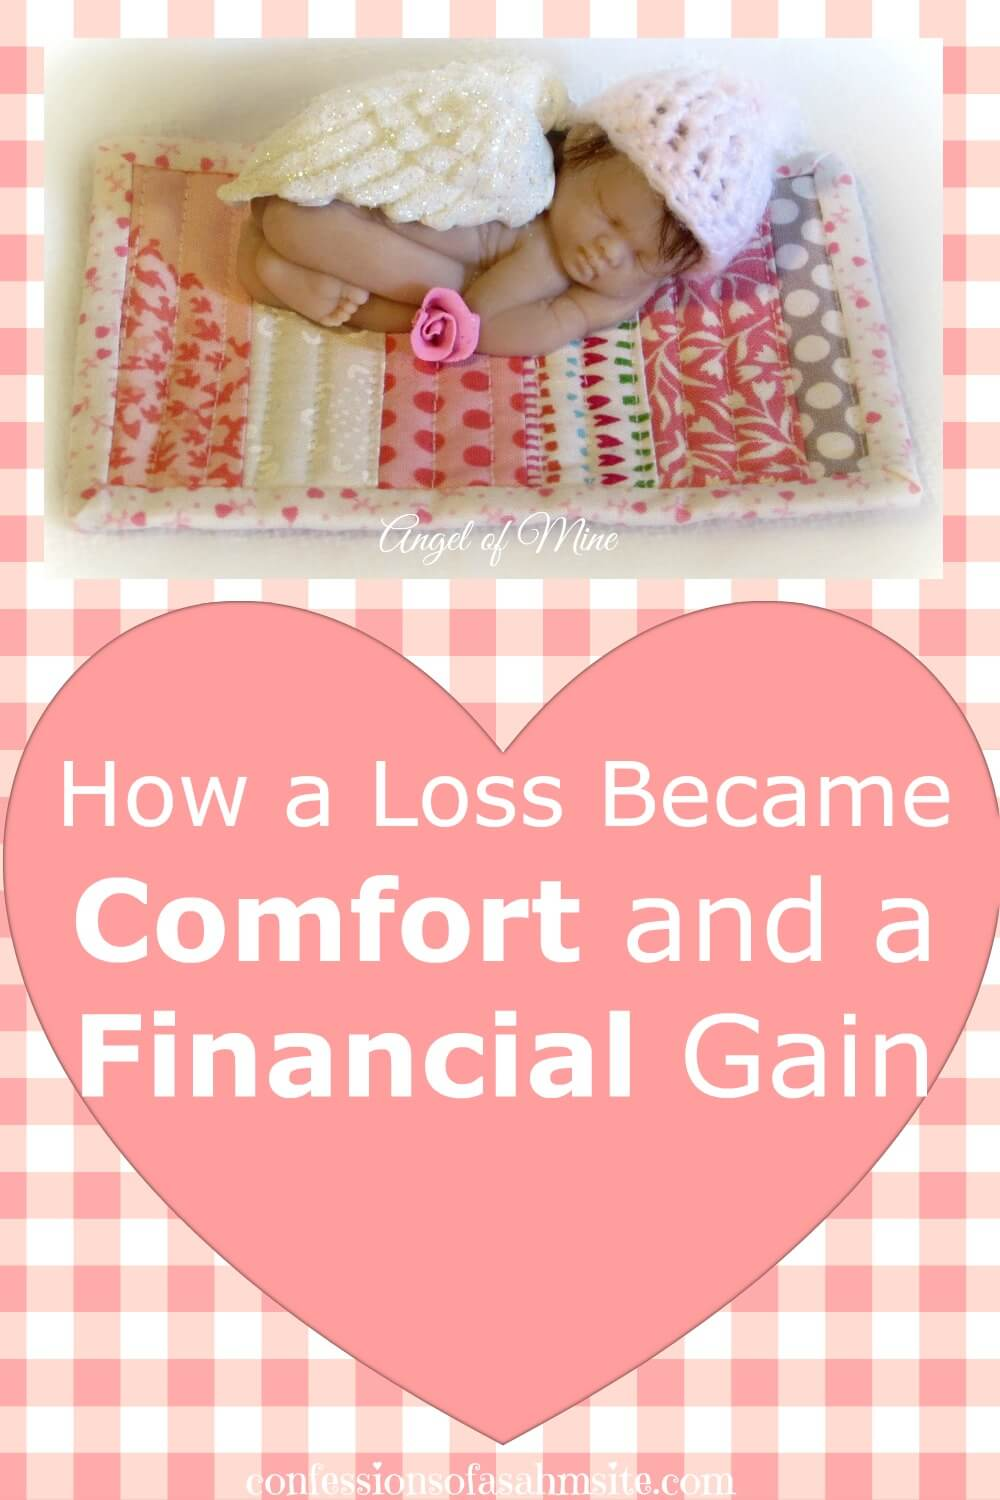 How a loss became comfort and a financial gain for this mom. Sometimes life brings pain but we have to learn to cope with it. Read the story of this mompreneur to see how this tragedy brought comfort and financial gain.